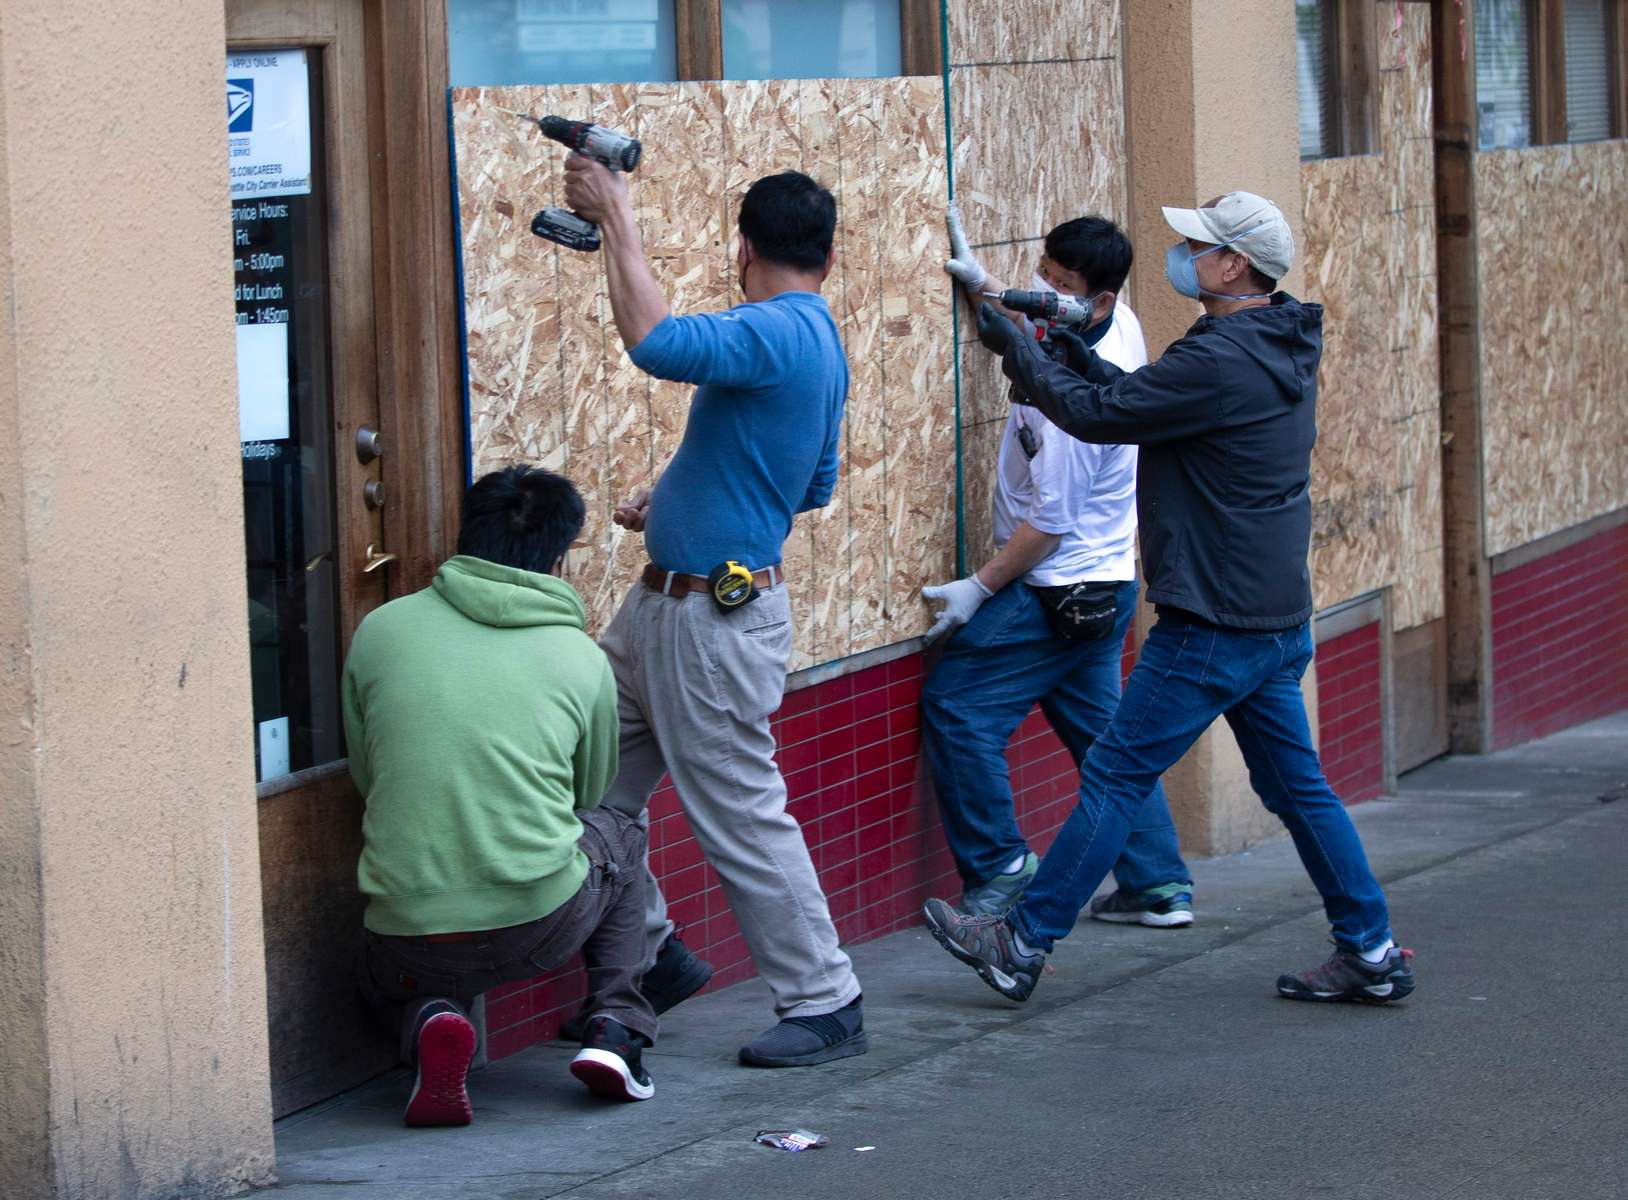 Maintenance crews from SCIDpda board up storefronts on one their buildings on Jackson St. after a night of protests in the Chinatown-International District in Seattle, Wash. on May 30, 2020. Protests around the country became violent over the past couple days after the police killing of George Floyd, a black man in Minneapolis. (photo by Karen Ducey)